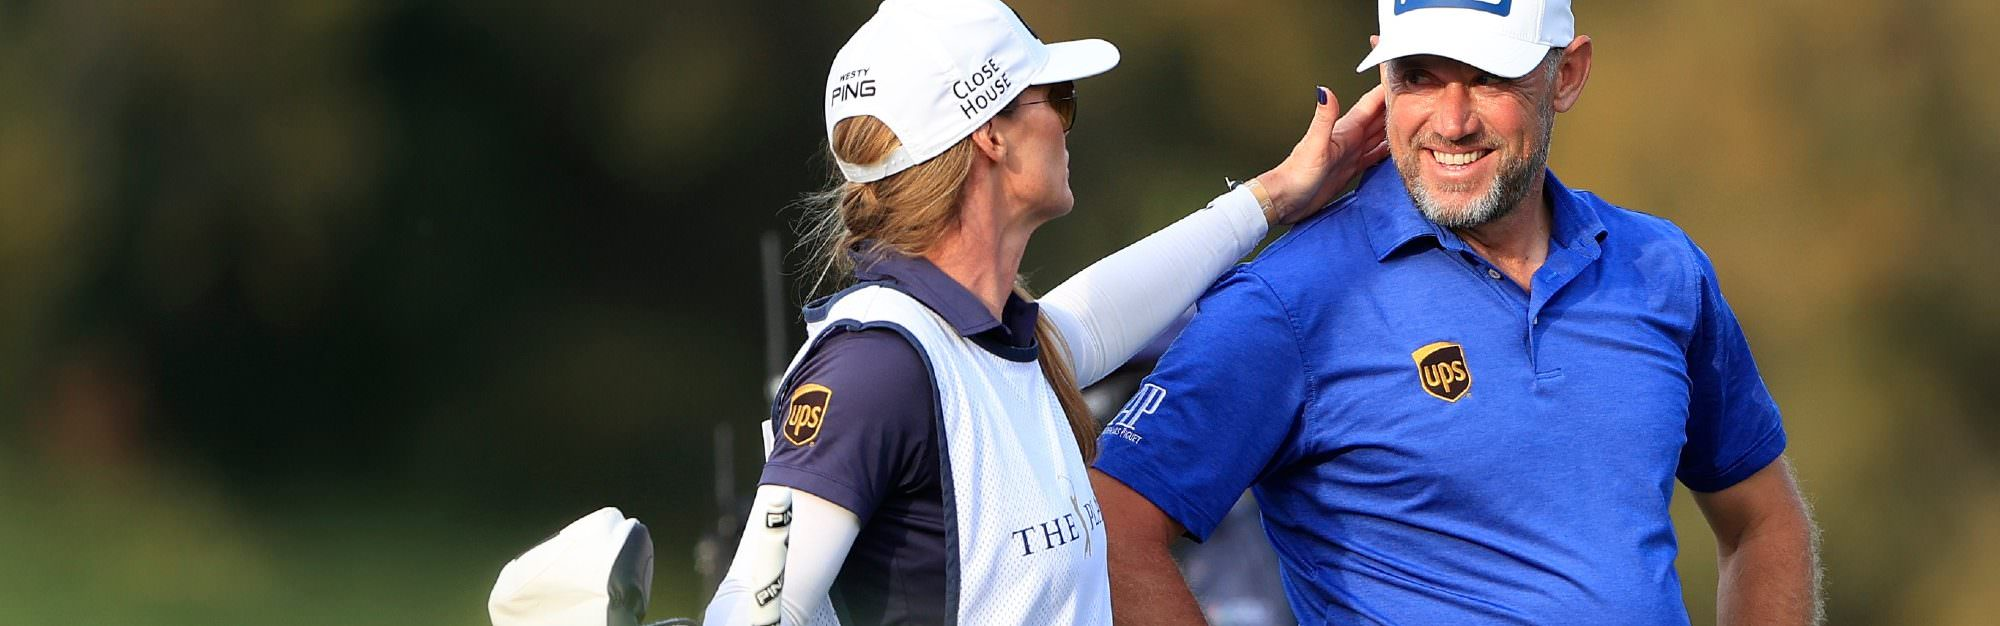 Westwood's got us talking about his major chances again - and it's all down to his 'secret weapon'